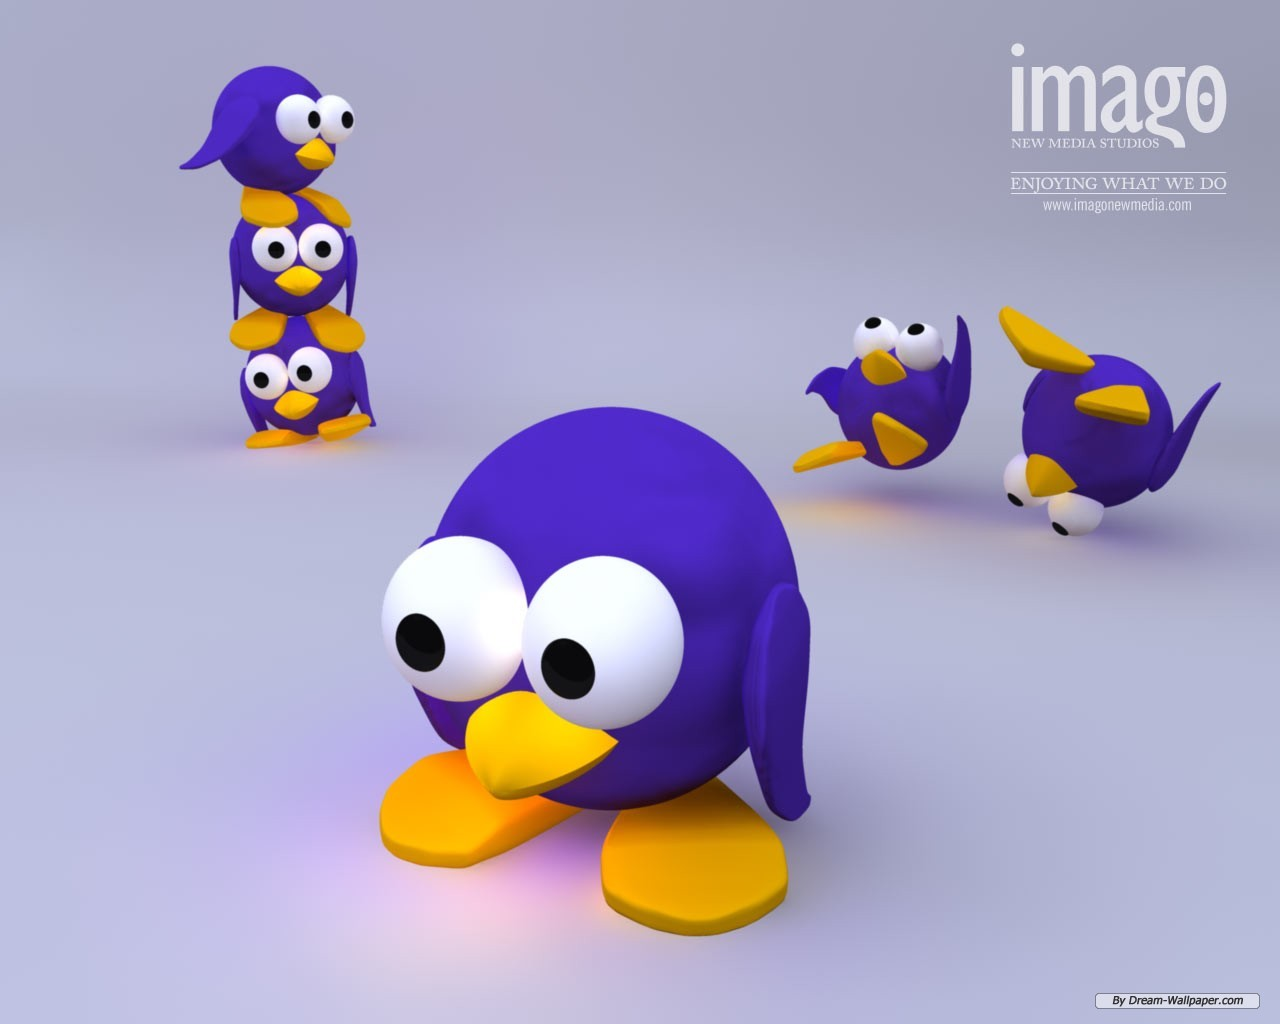 3d Cartoon Desktop Wallpaper Wallpapersafari